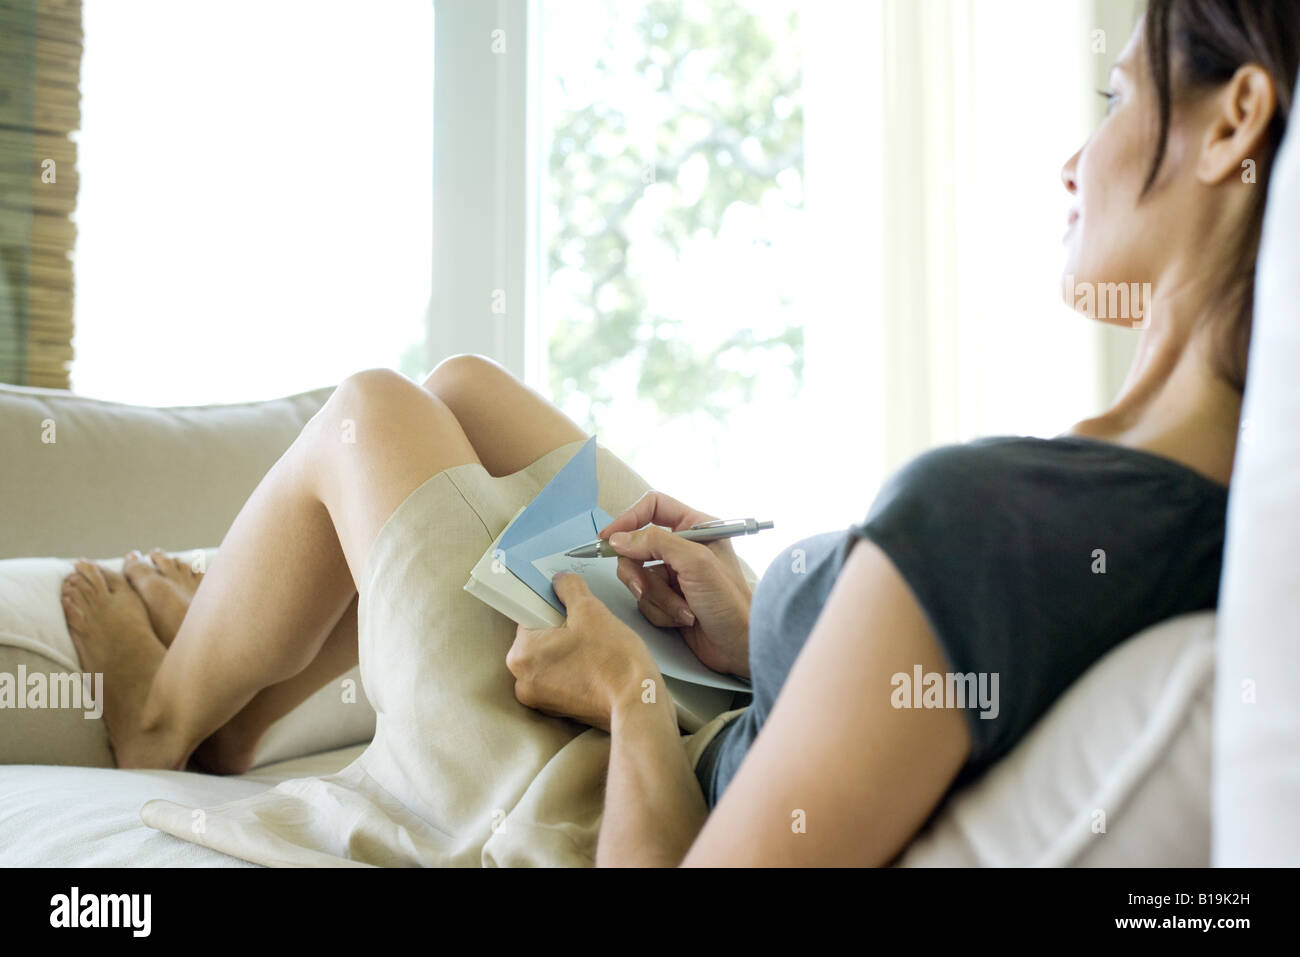 Woman sitting on sofa, holding stationery and pen - Stock Image